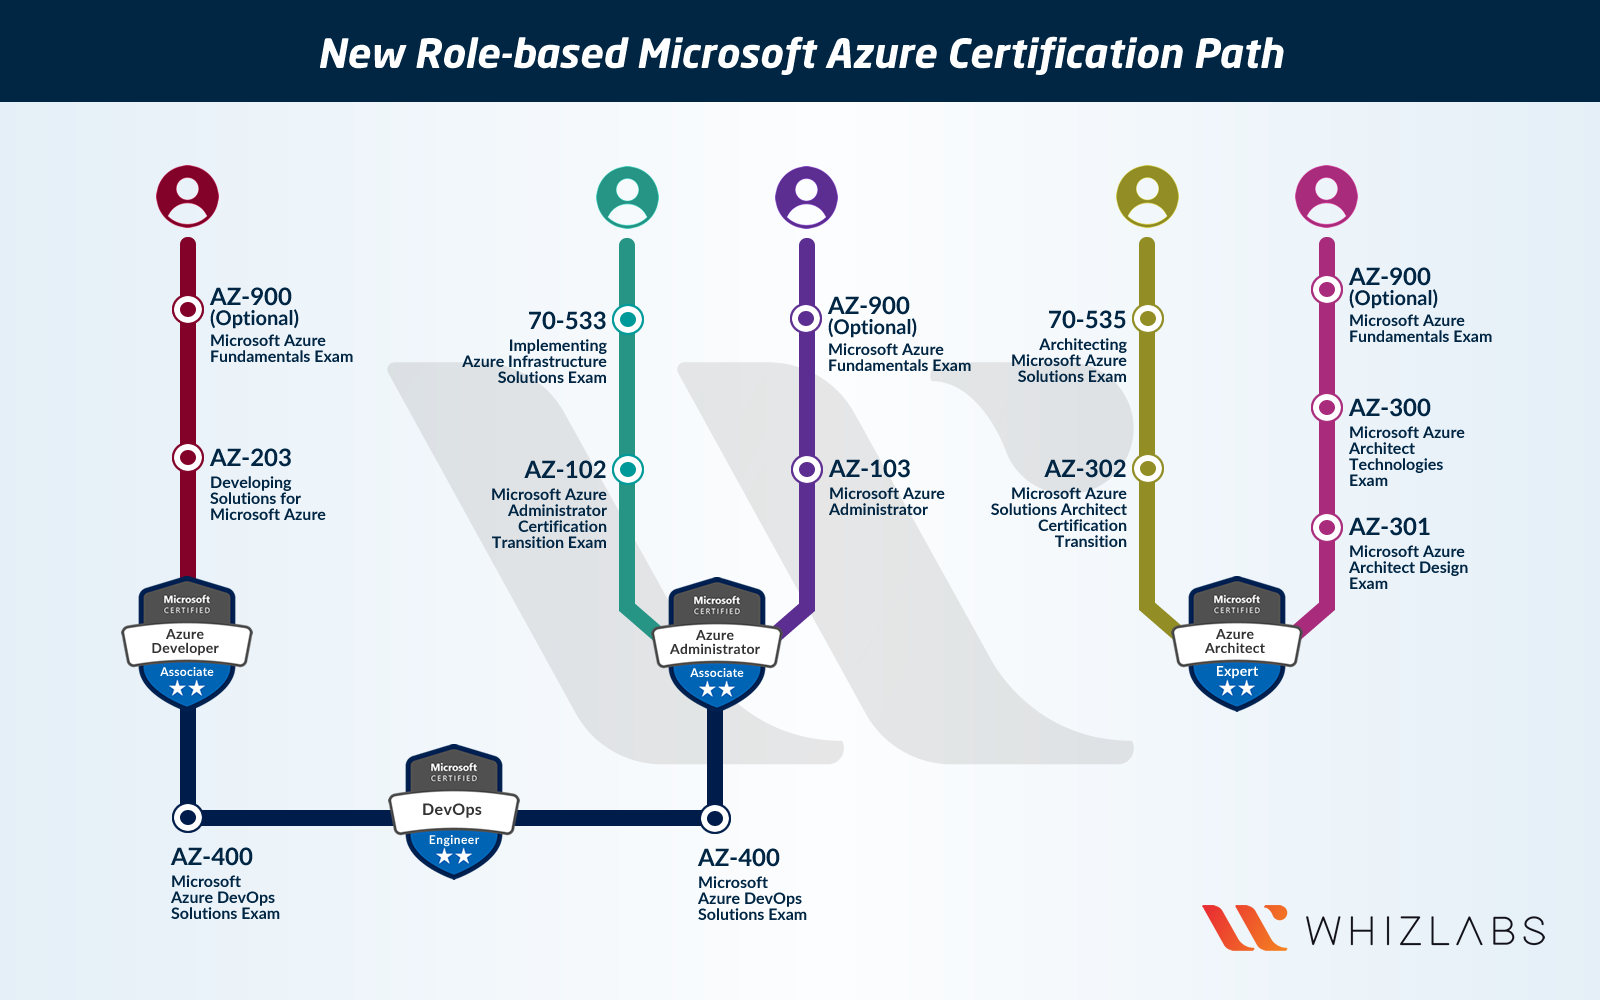 New Microsoft Azure Certifications Path in 2019 [Updated] - Whizlabs